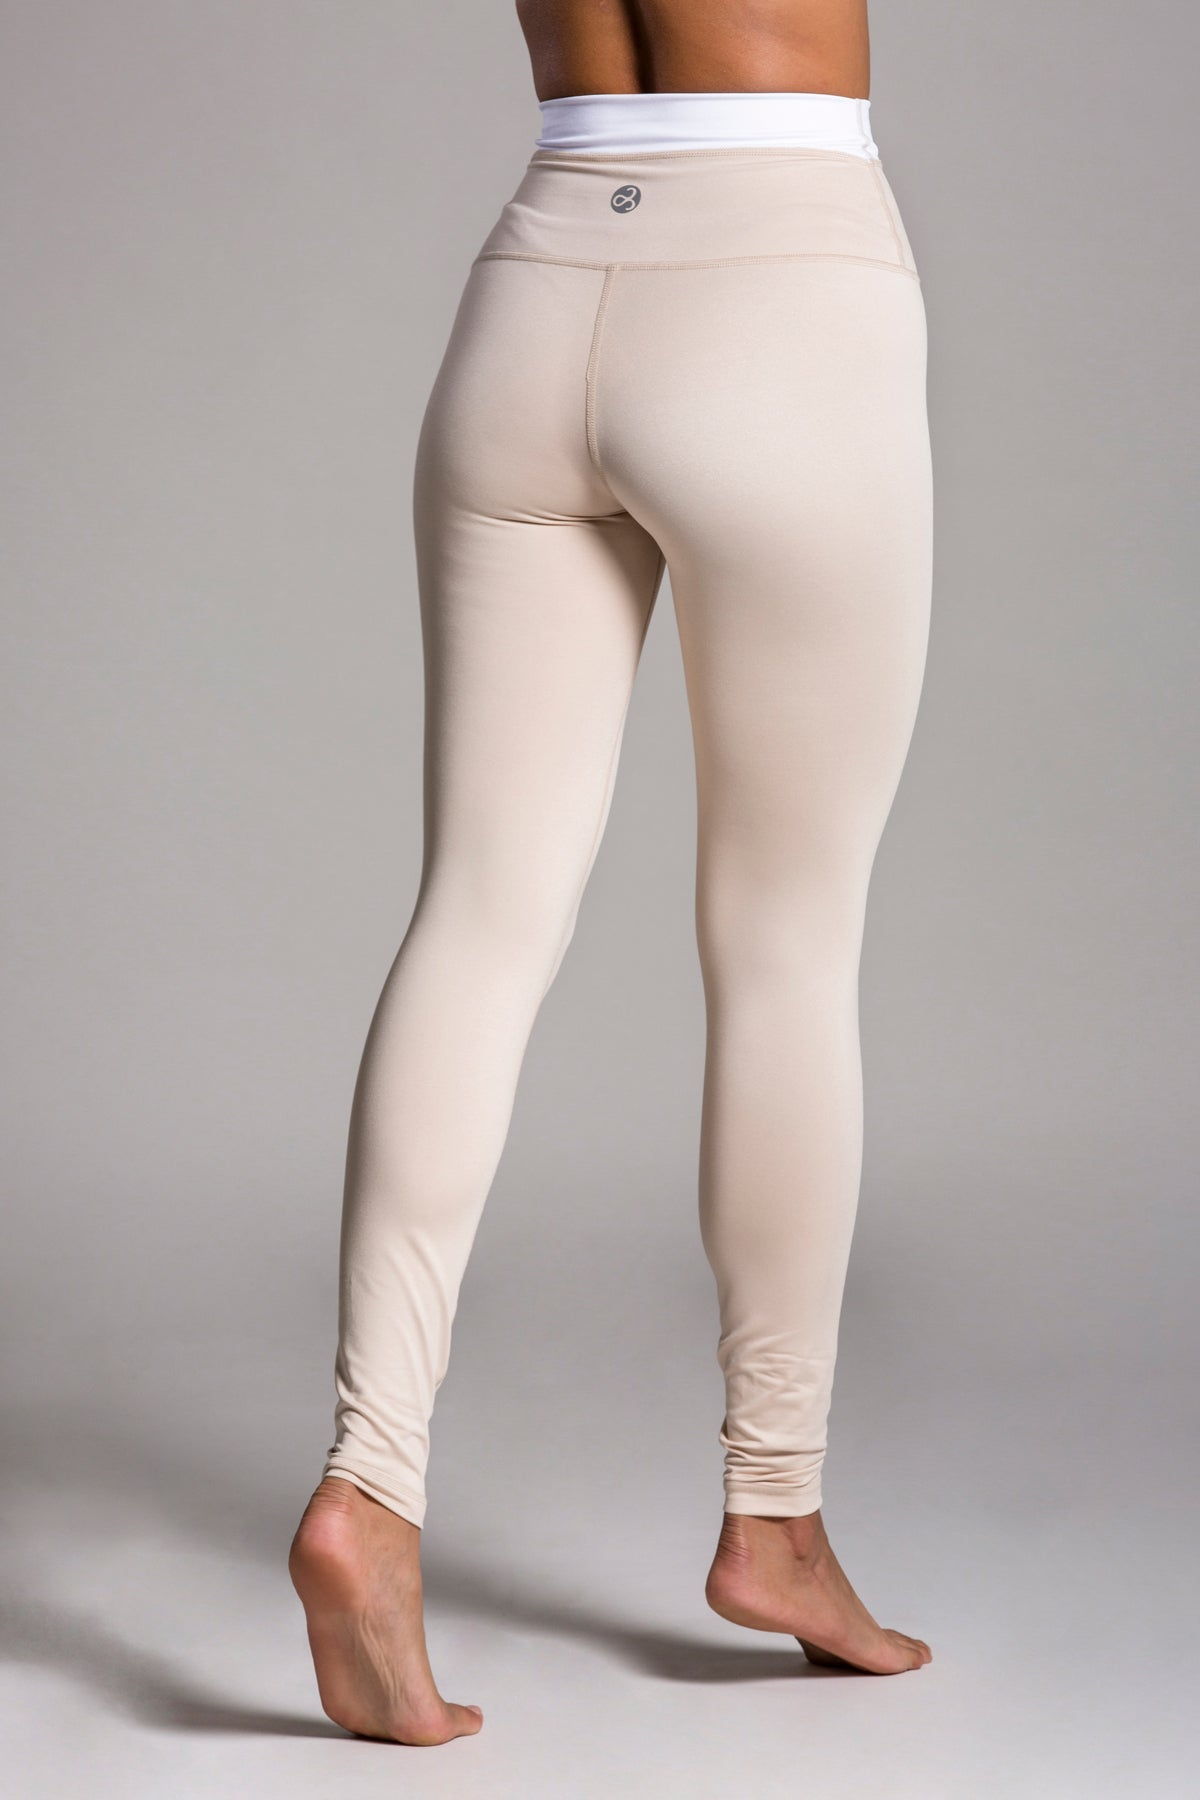 The Due Basic Nude For Body Barre